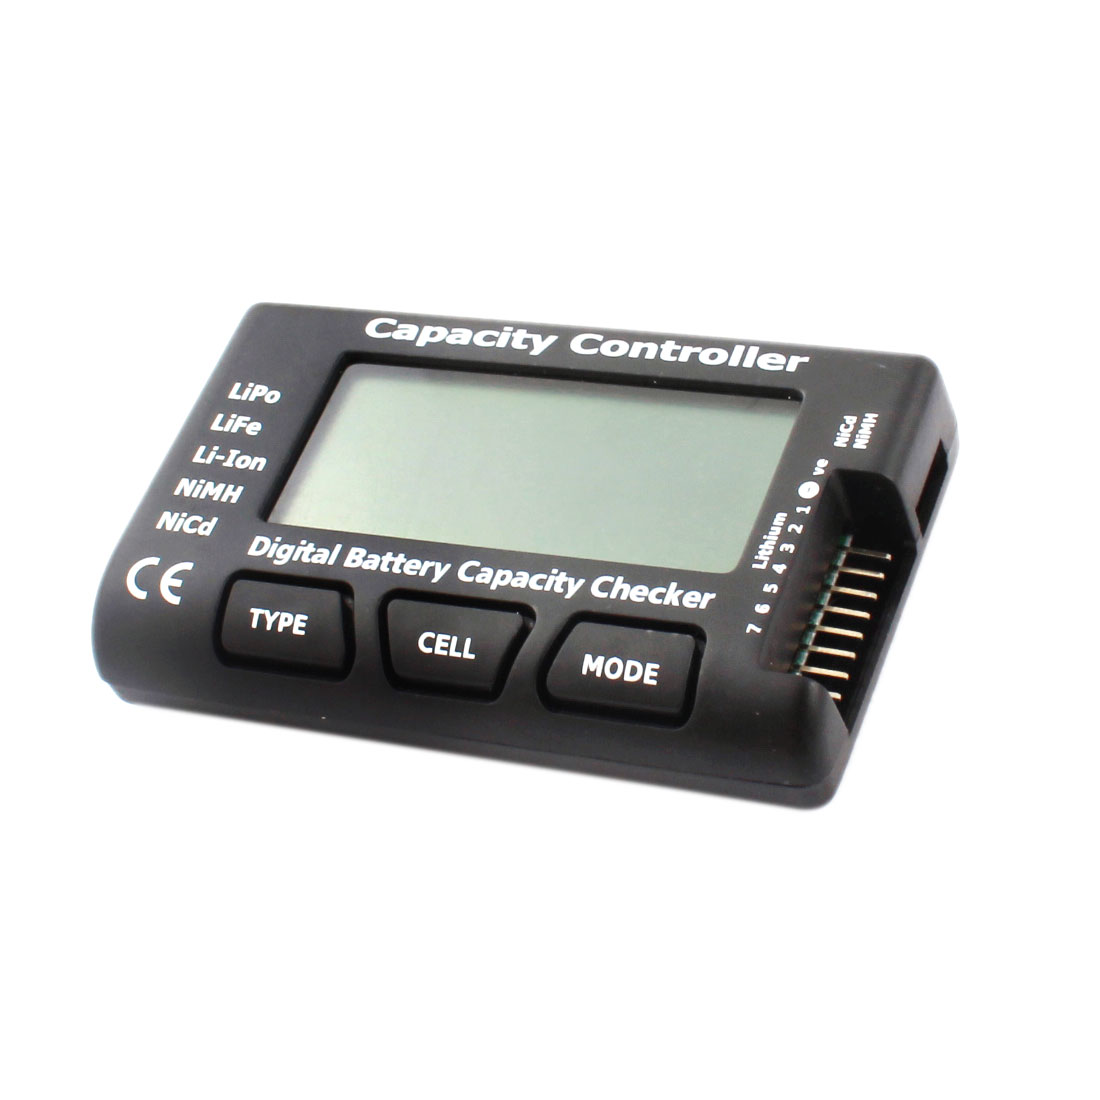 RC CellMeter-7 LCD Digital Battery Capacity Checker Tester Controller for Lipo LiFe Li-Ion NiMH NiCd